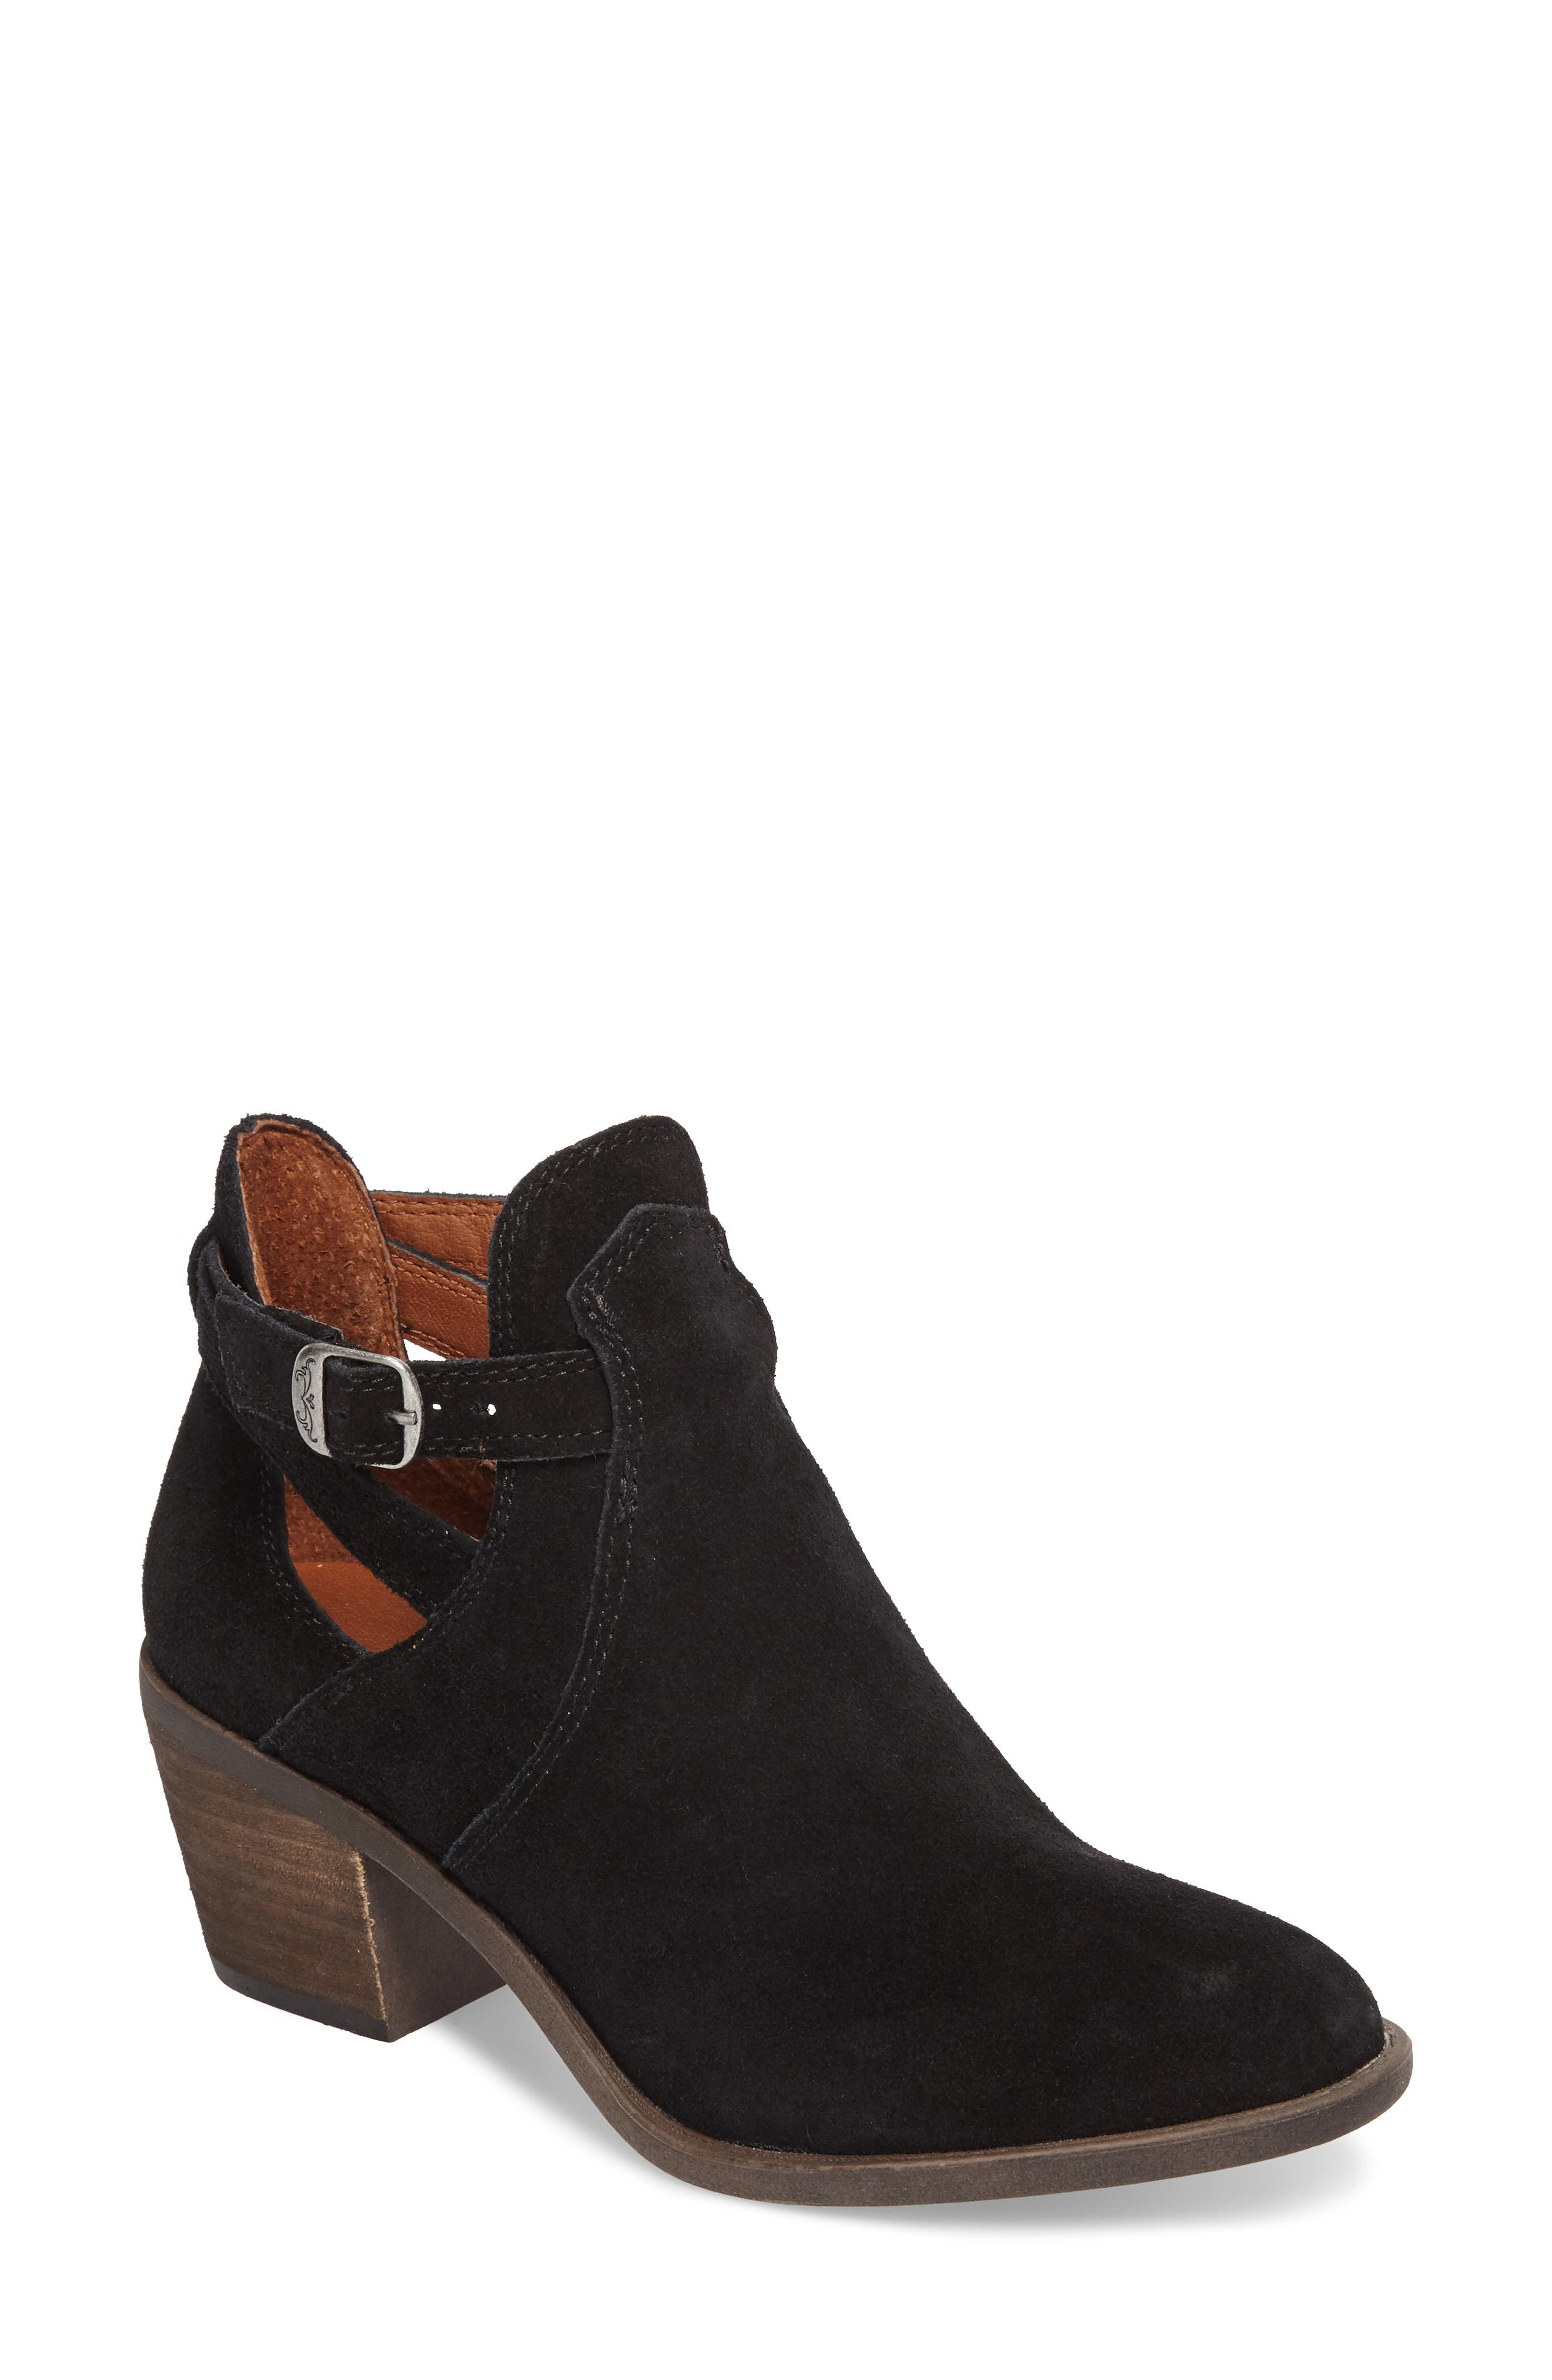 Nandita Cutout Bootie,                             Main thumbnail 1, color,                             001